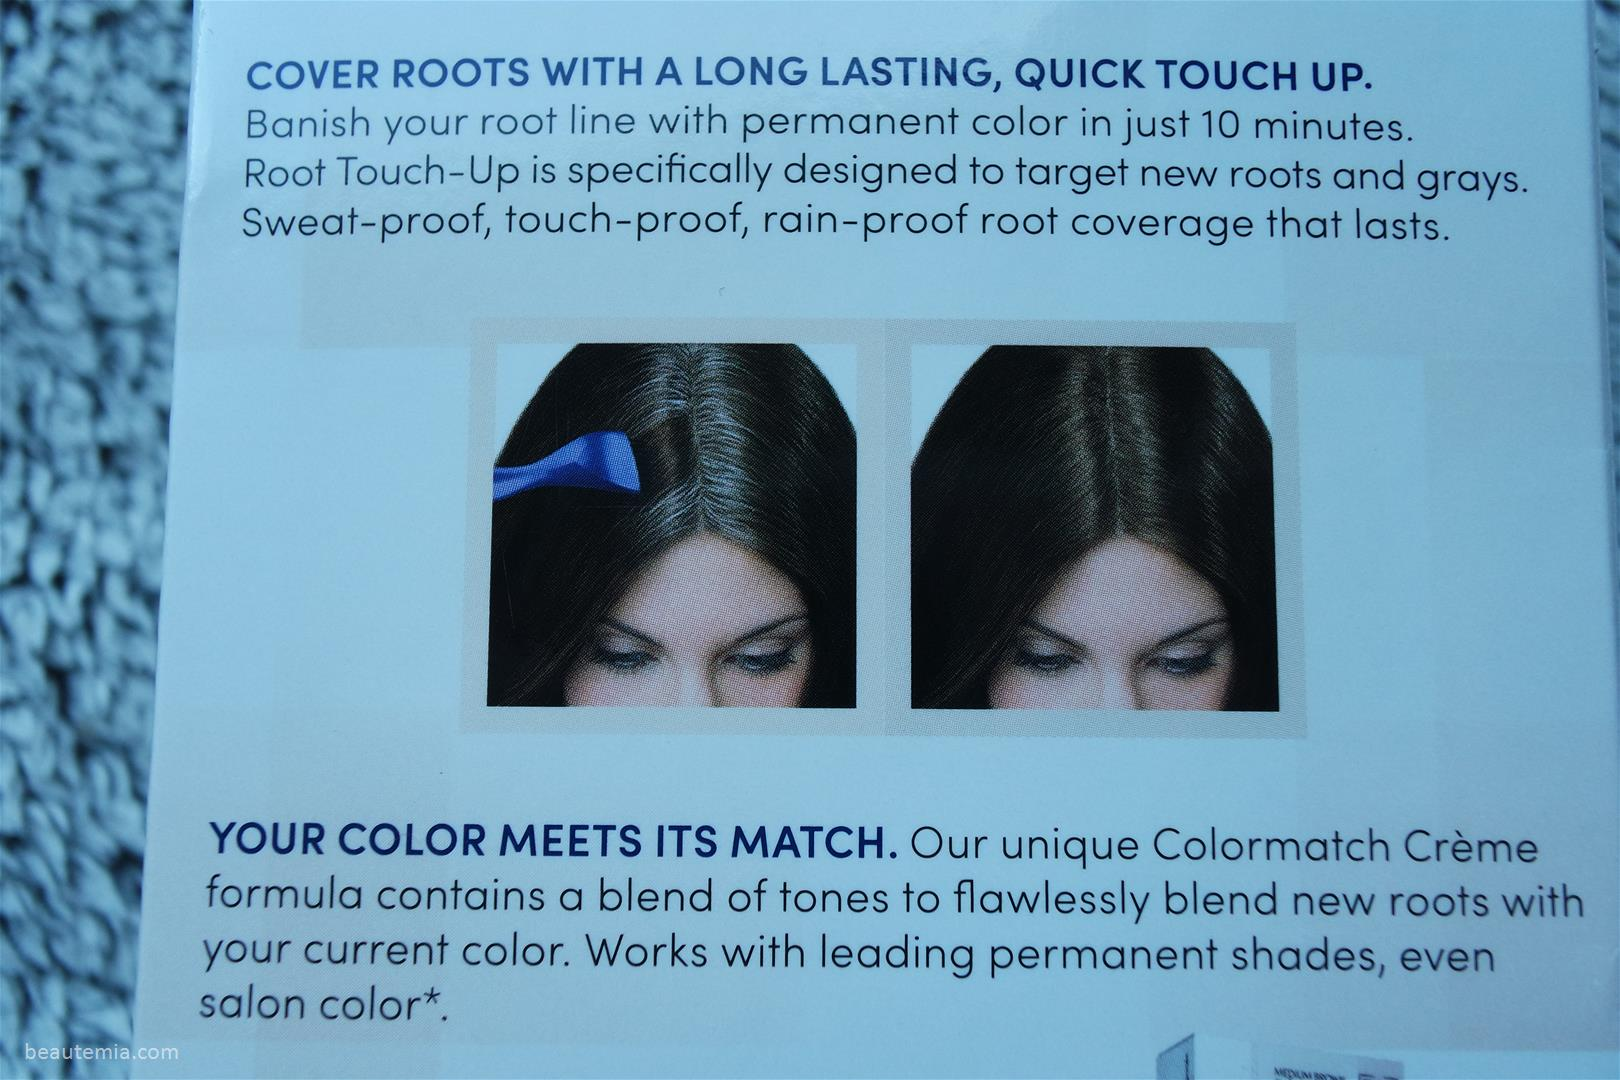 Clairol Permanent Root Touch-up for Gray hair, best self hair dye for black brown hair, asian hair, L'Oreal hair color dye, henna gray silver hair color & root touch up